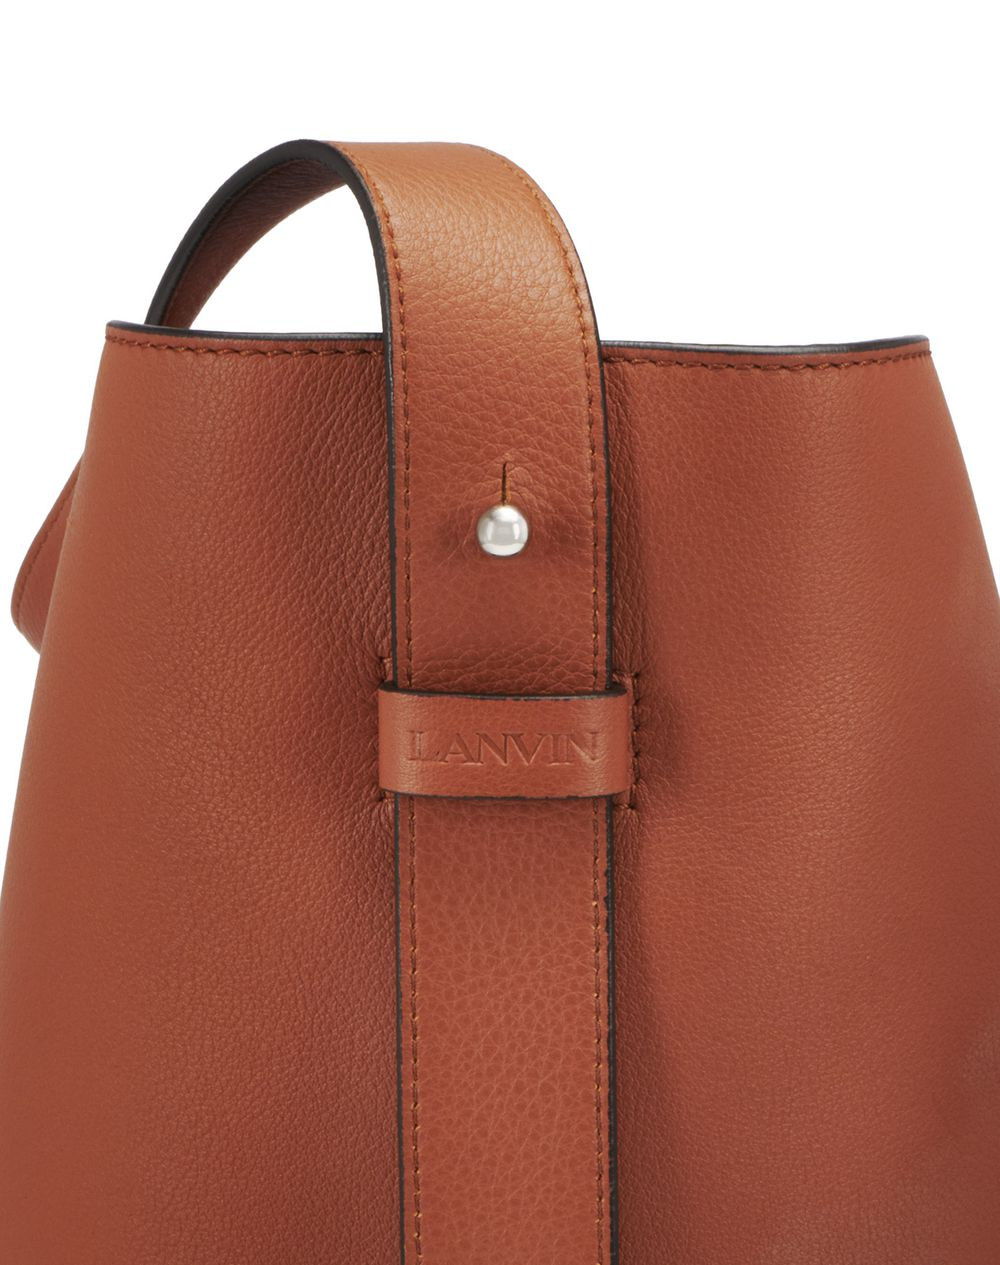 EARTH-COLOURED HOOK BAG - Lanvin